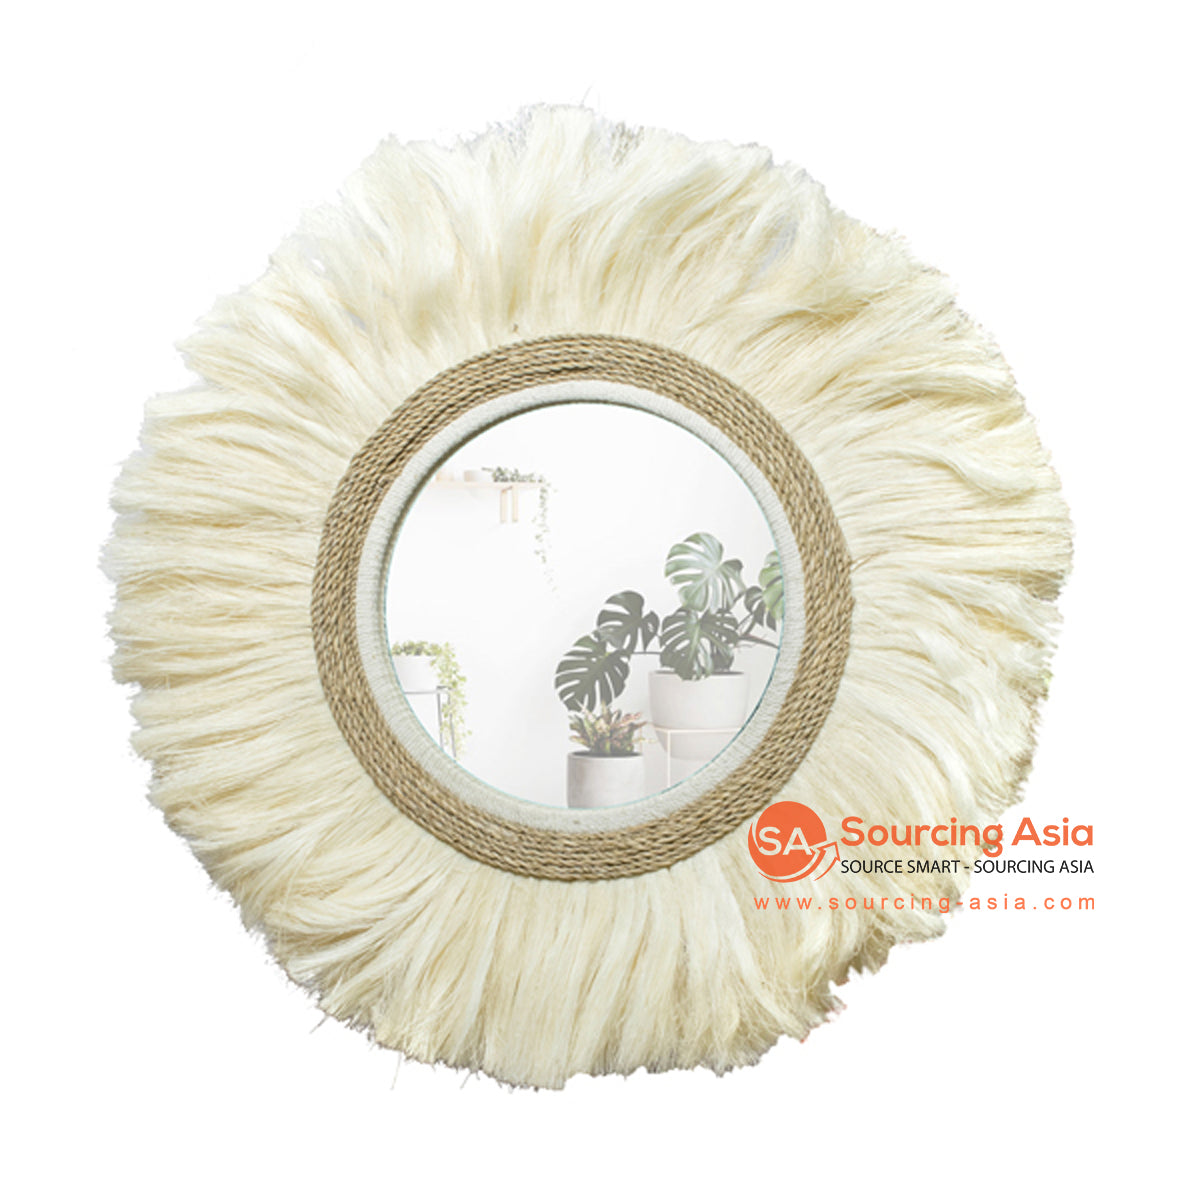 SHL172-4 NATURAL ROUND RAFFIA MIRROR